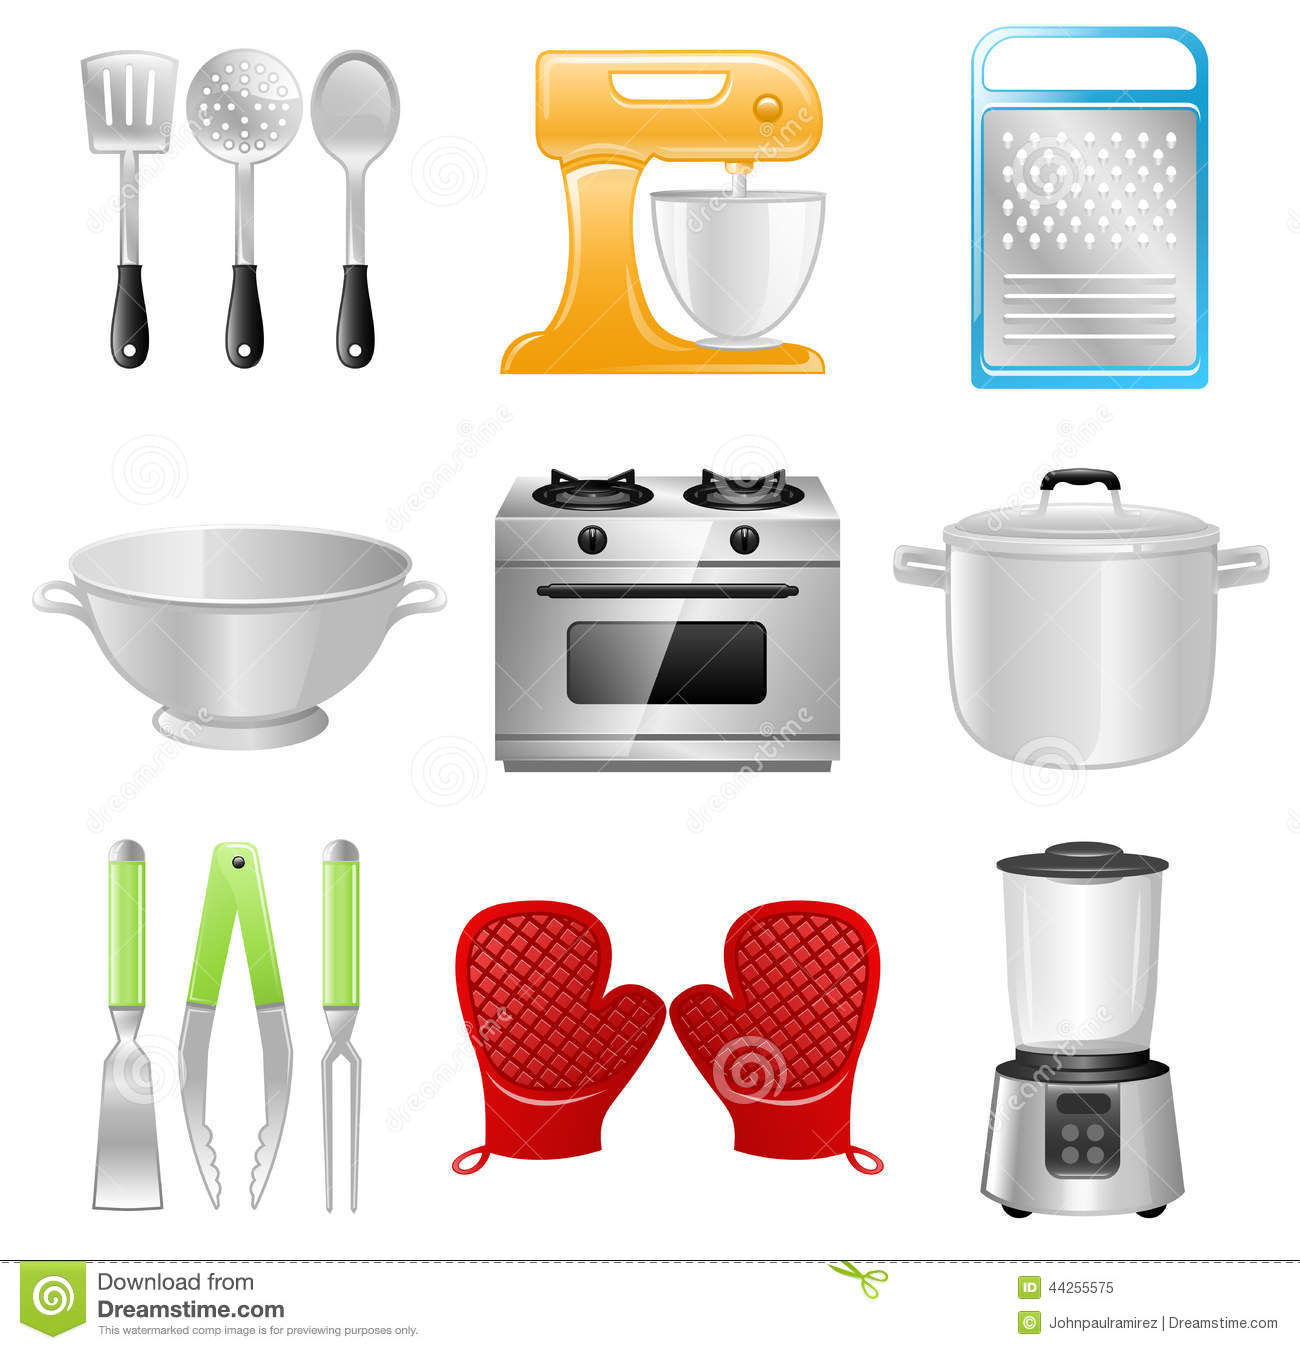 Stunning List Of Kitchen Utensils And Appliances.